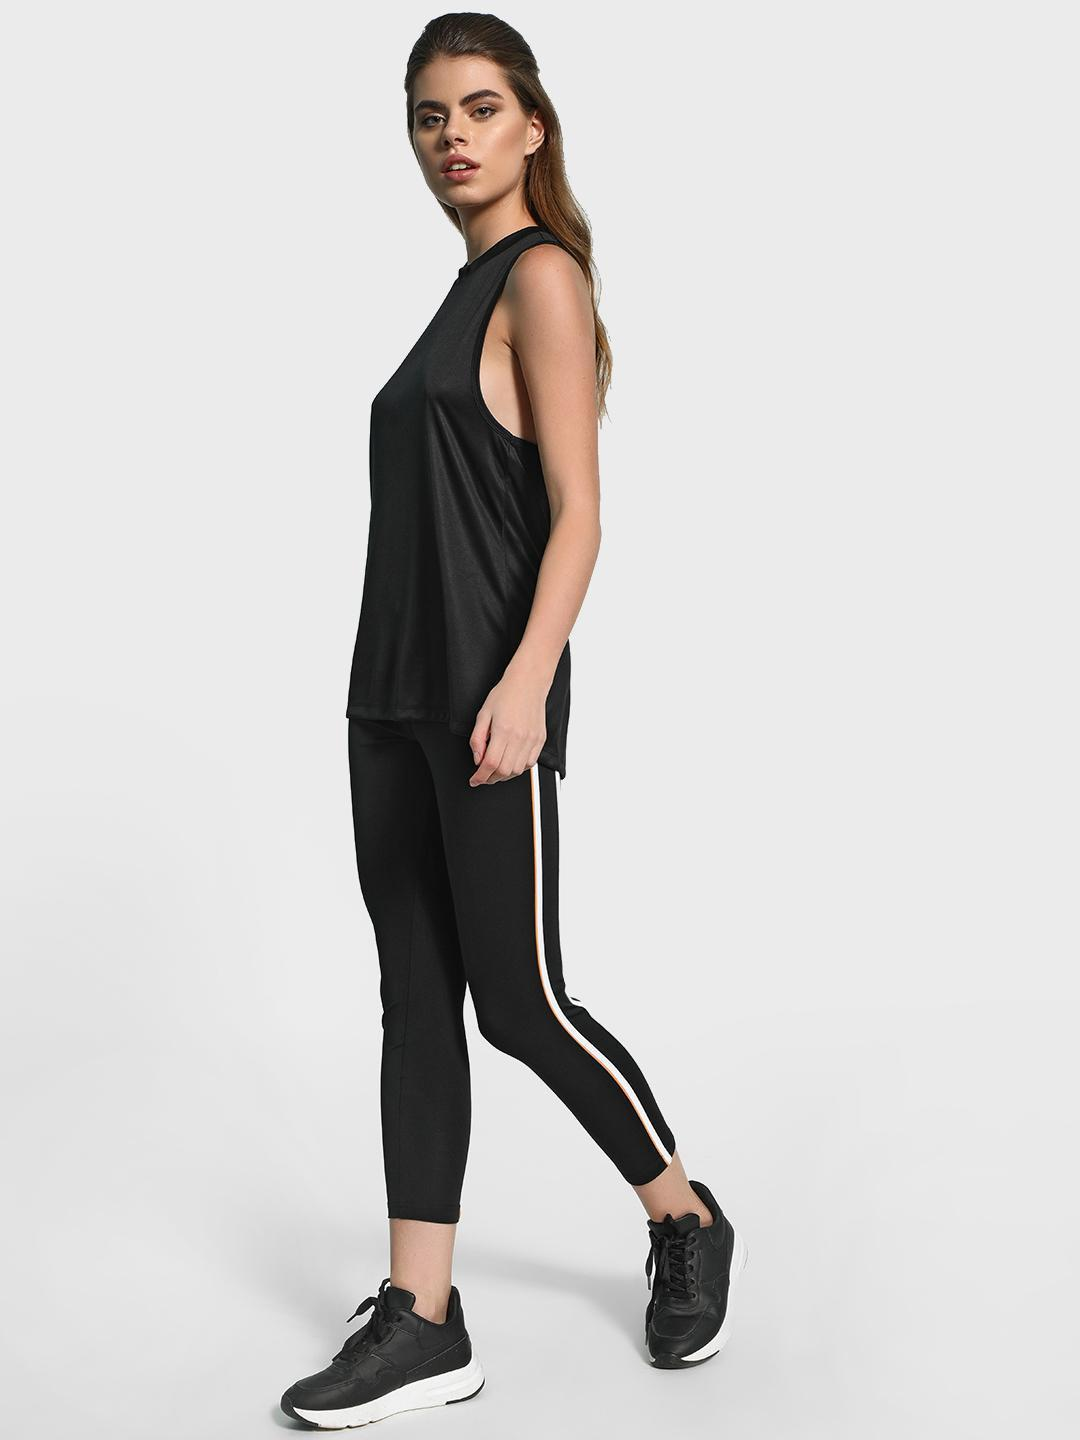 K ACTIVE Black KOOVS Contrast Side Panel Leggings 1